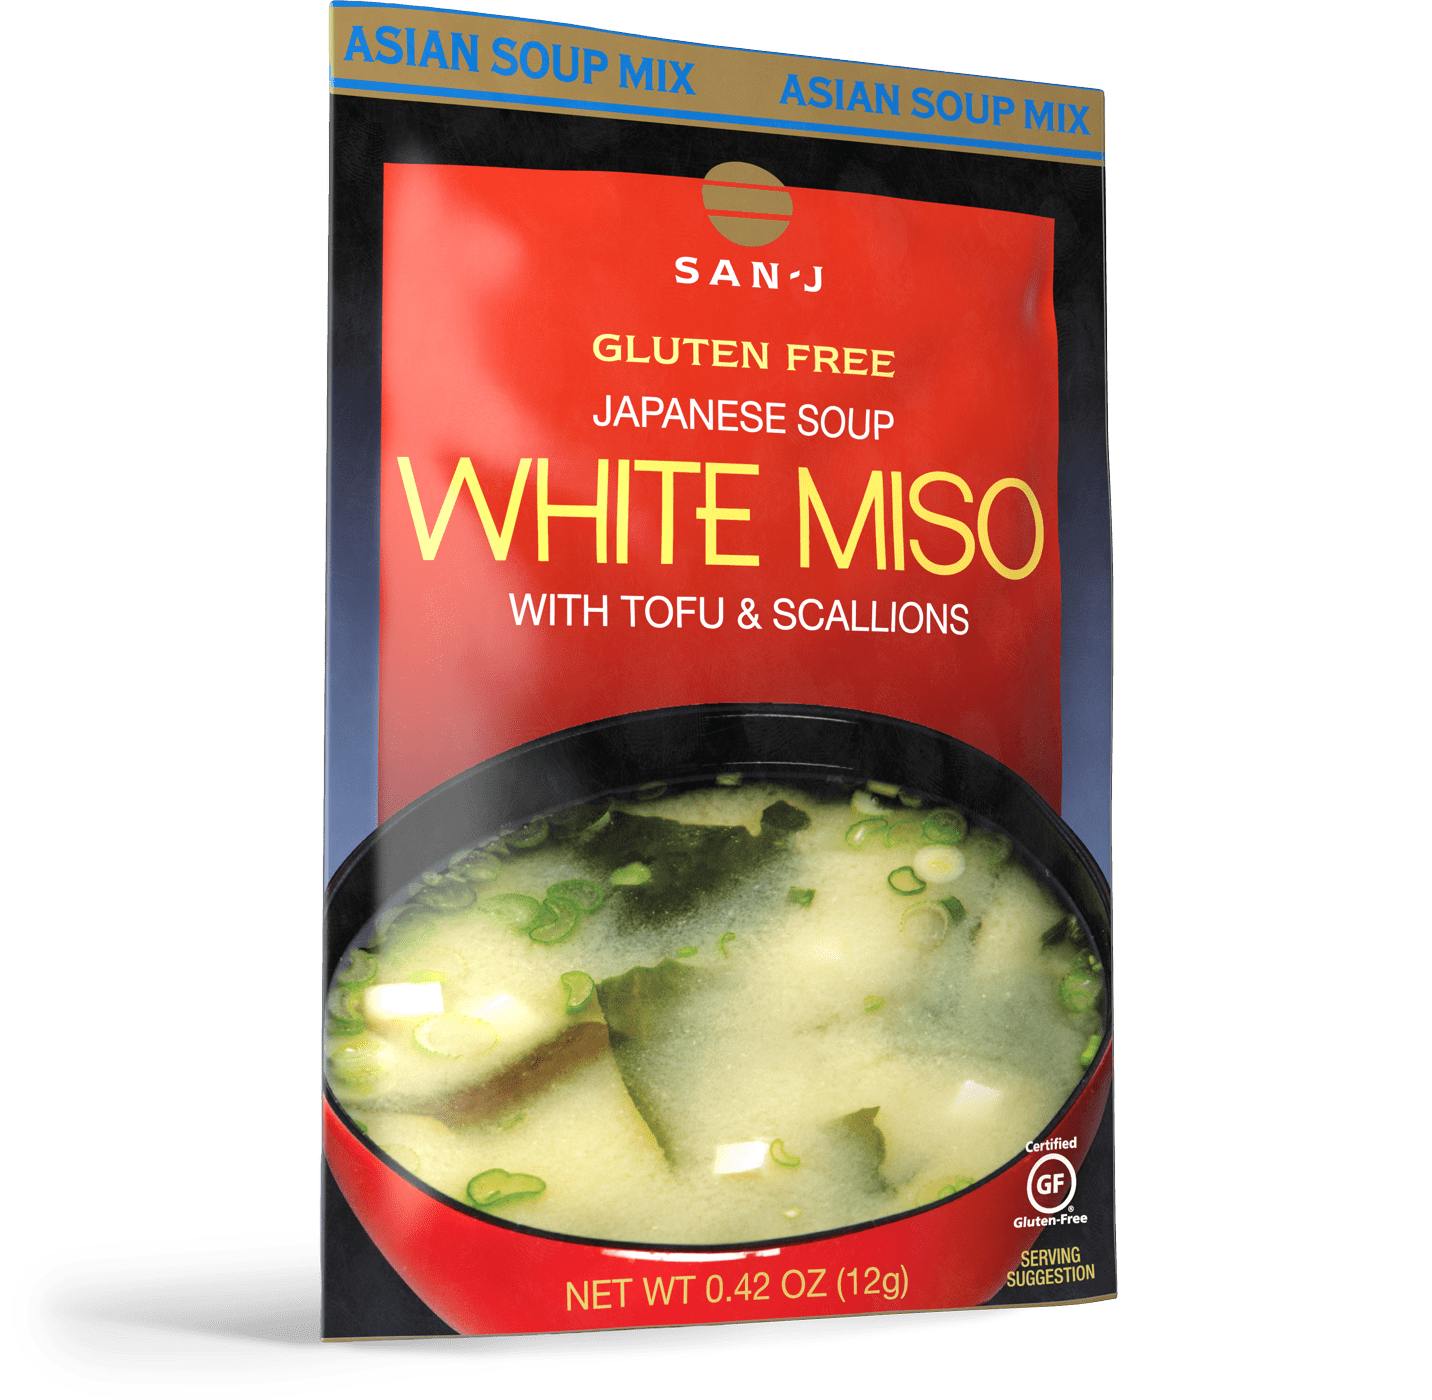 White miso soup no bg w shadow v2